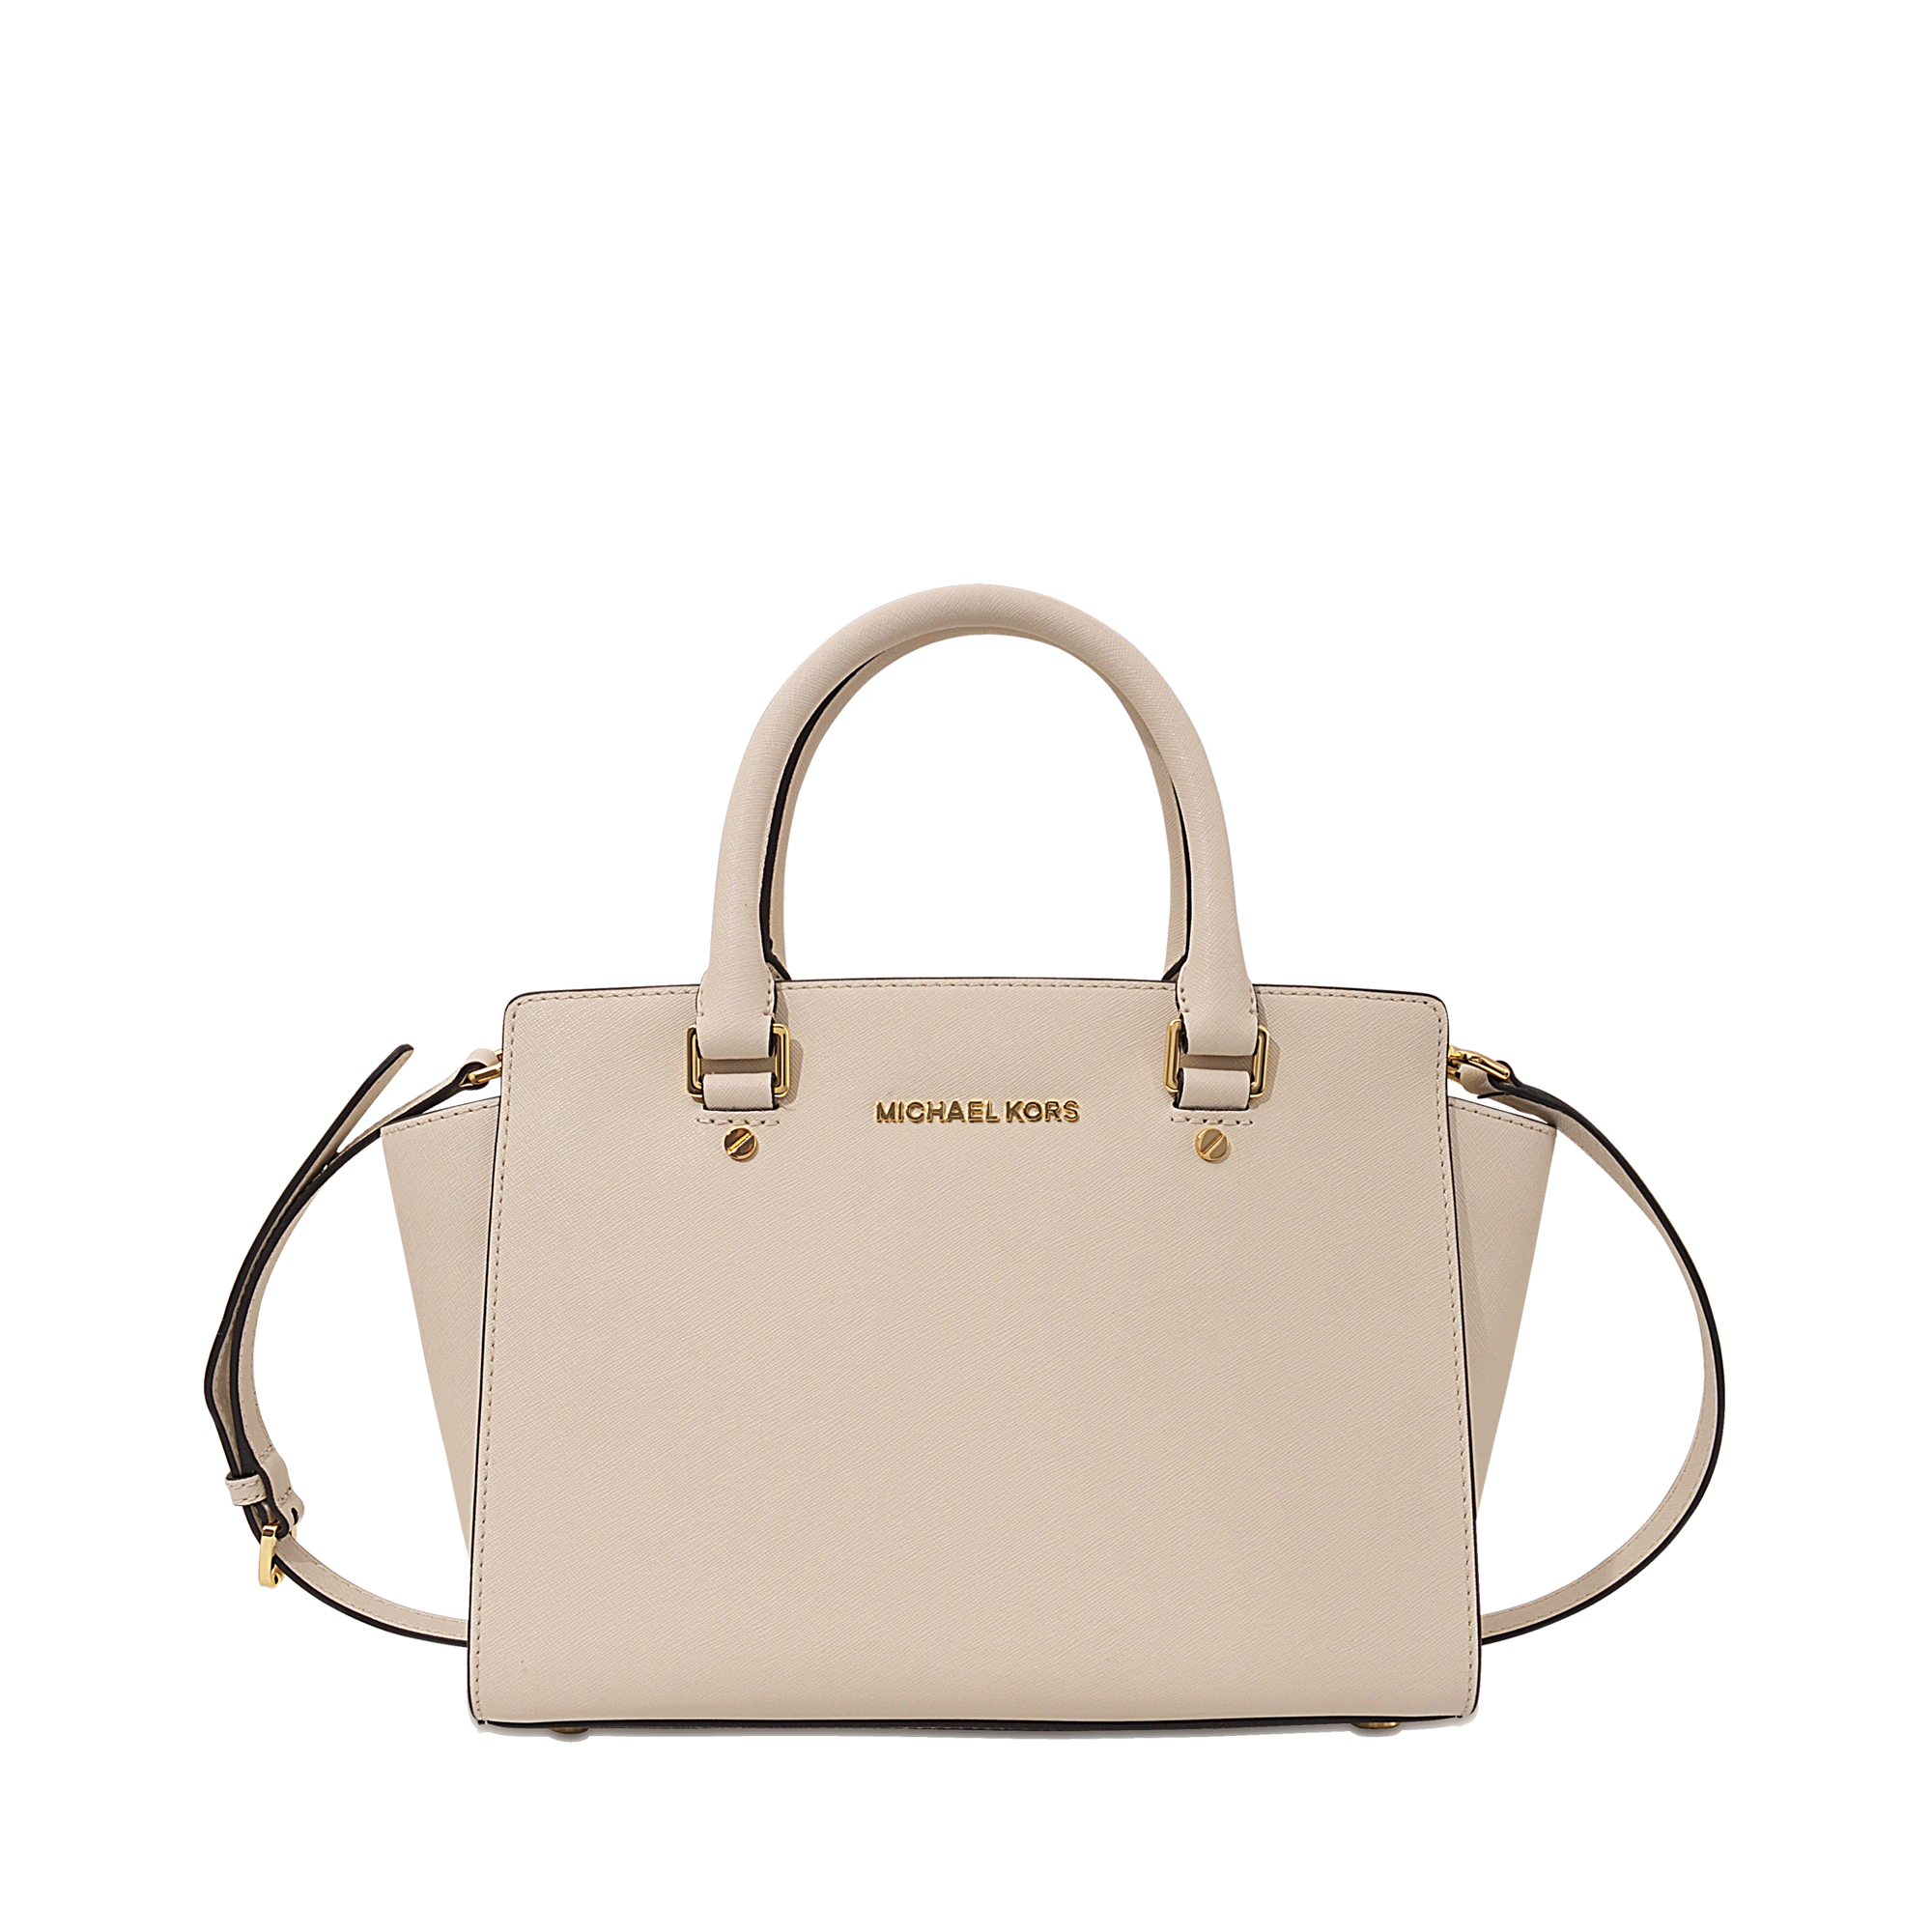 35b4934bcfc7 MICHAEL Michael Kors Selma Md Tz Satchel in Natural - Lyst